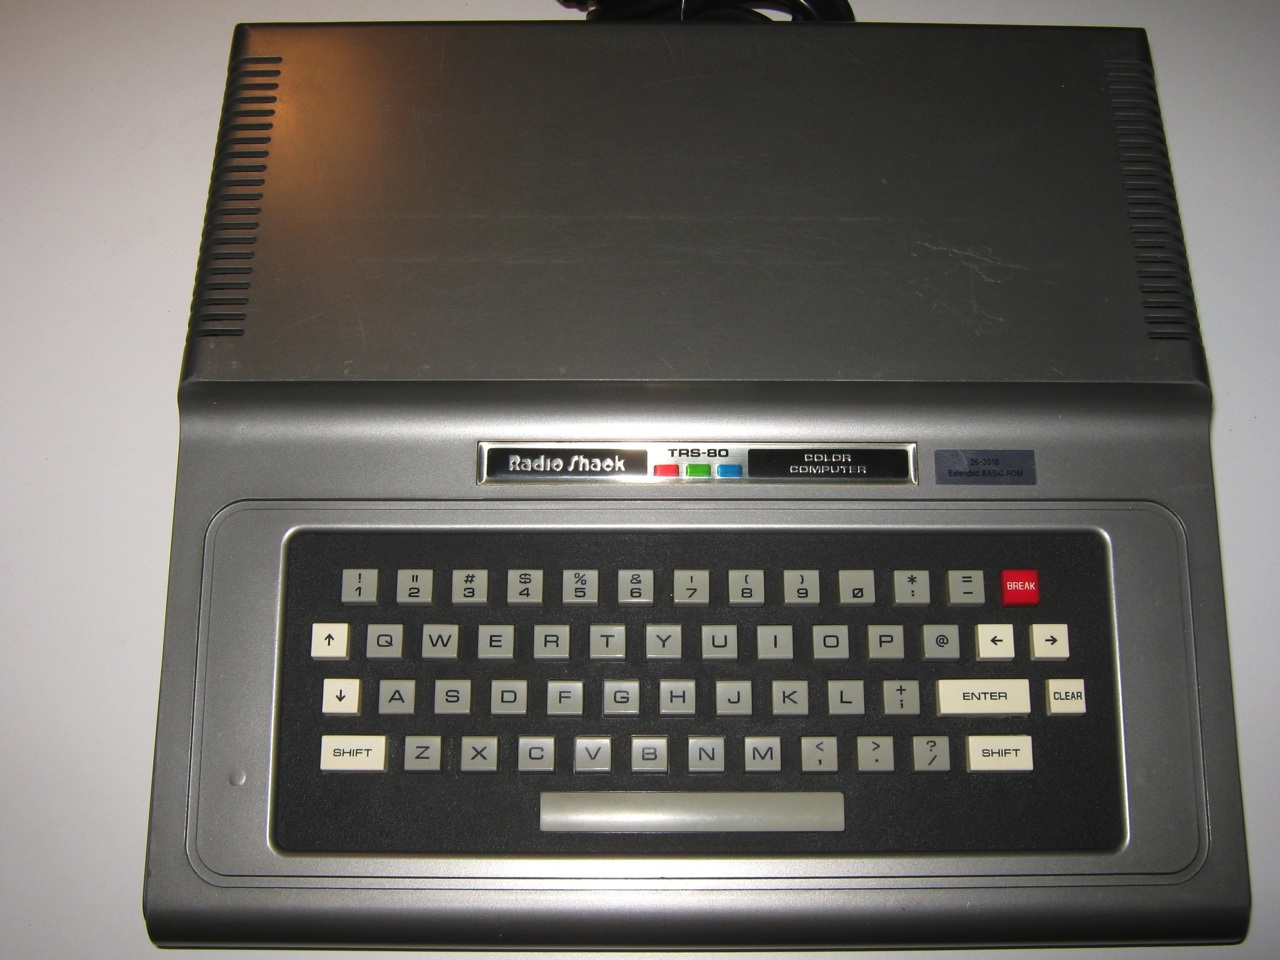 Behold the Radioshack TRS-80